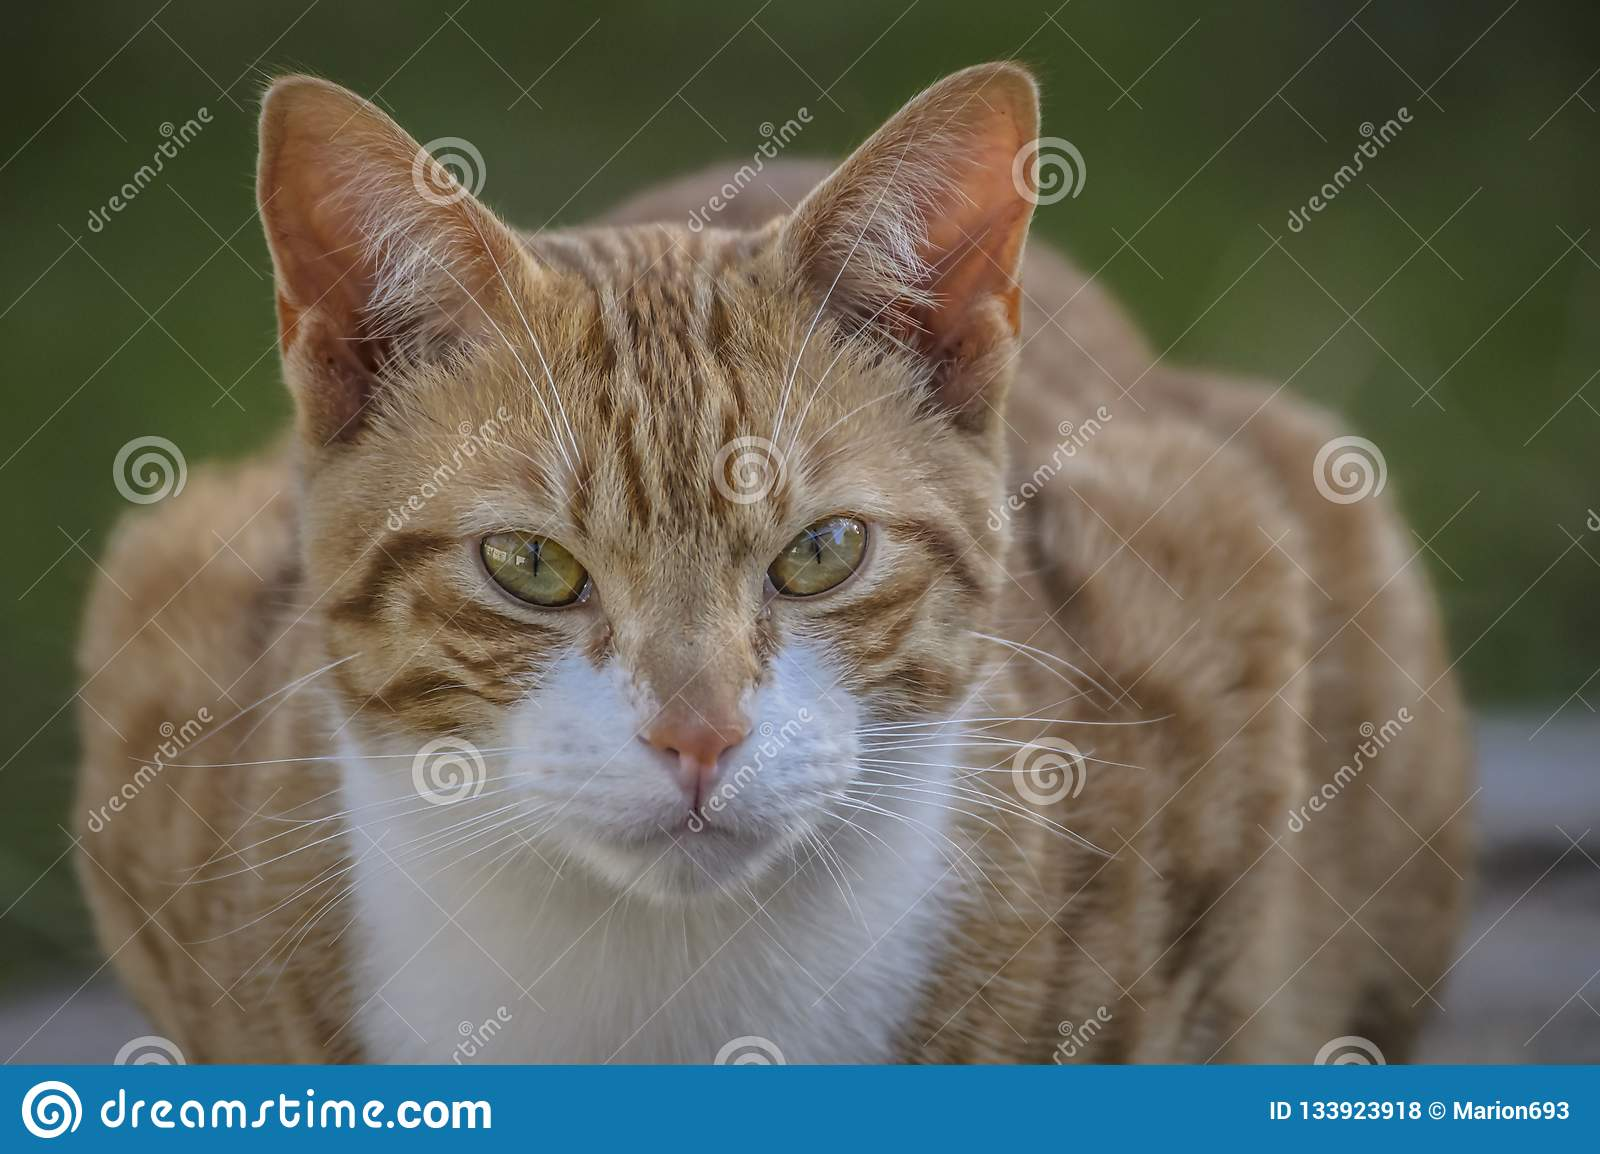 Ginger and white cat, with upright ears and big eyes, staring at camera